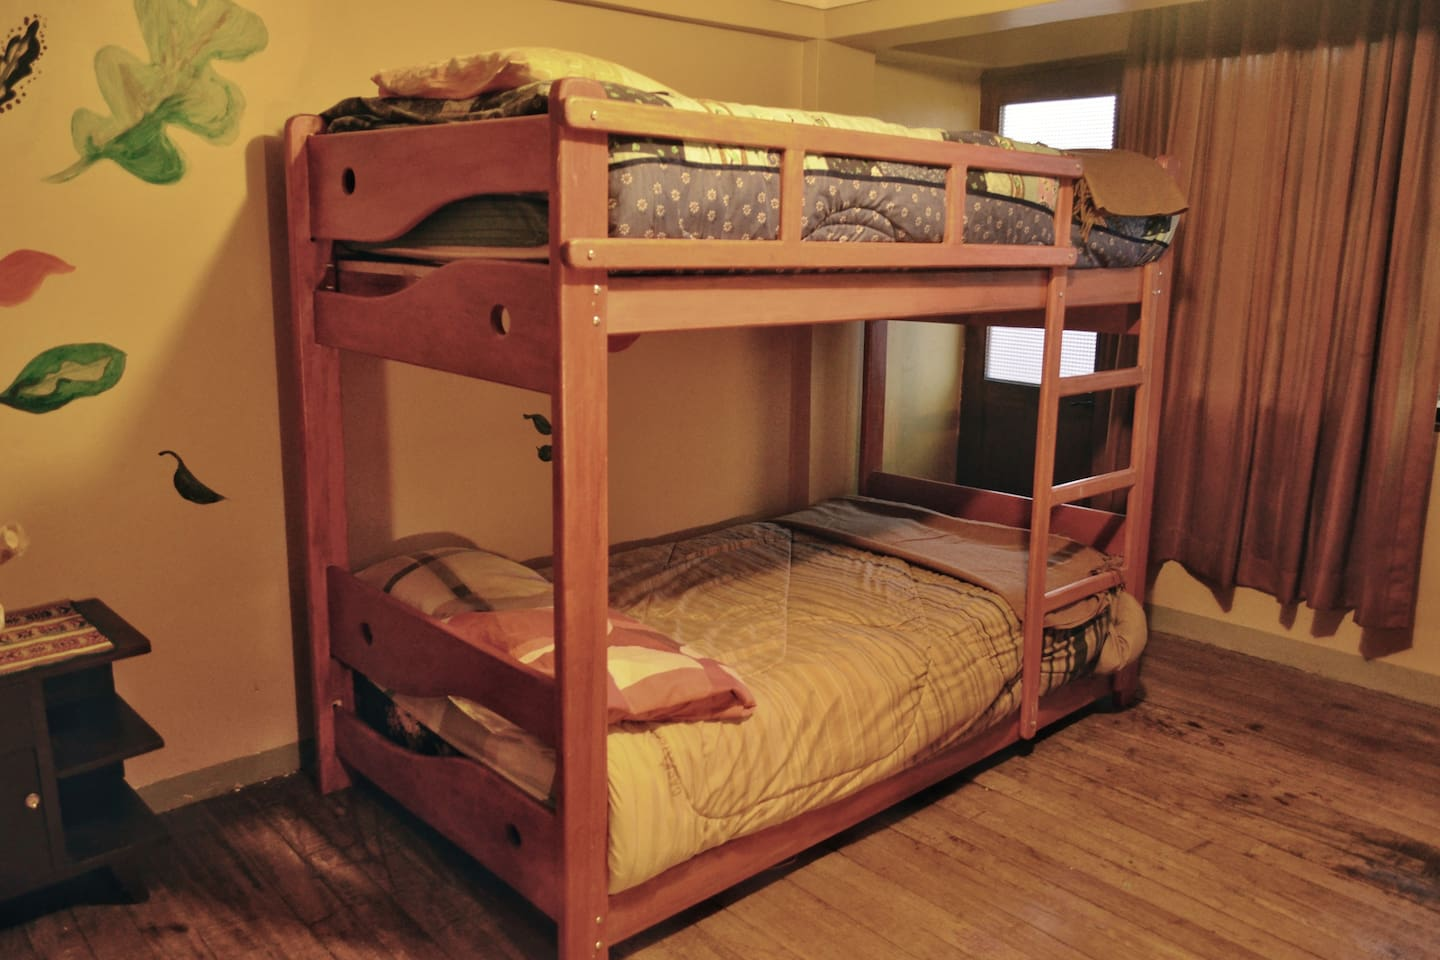 Two of the four beds in this shared bedroom